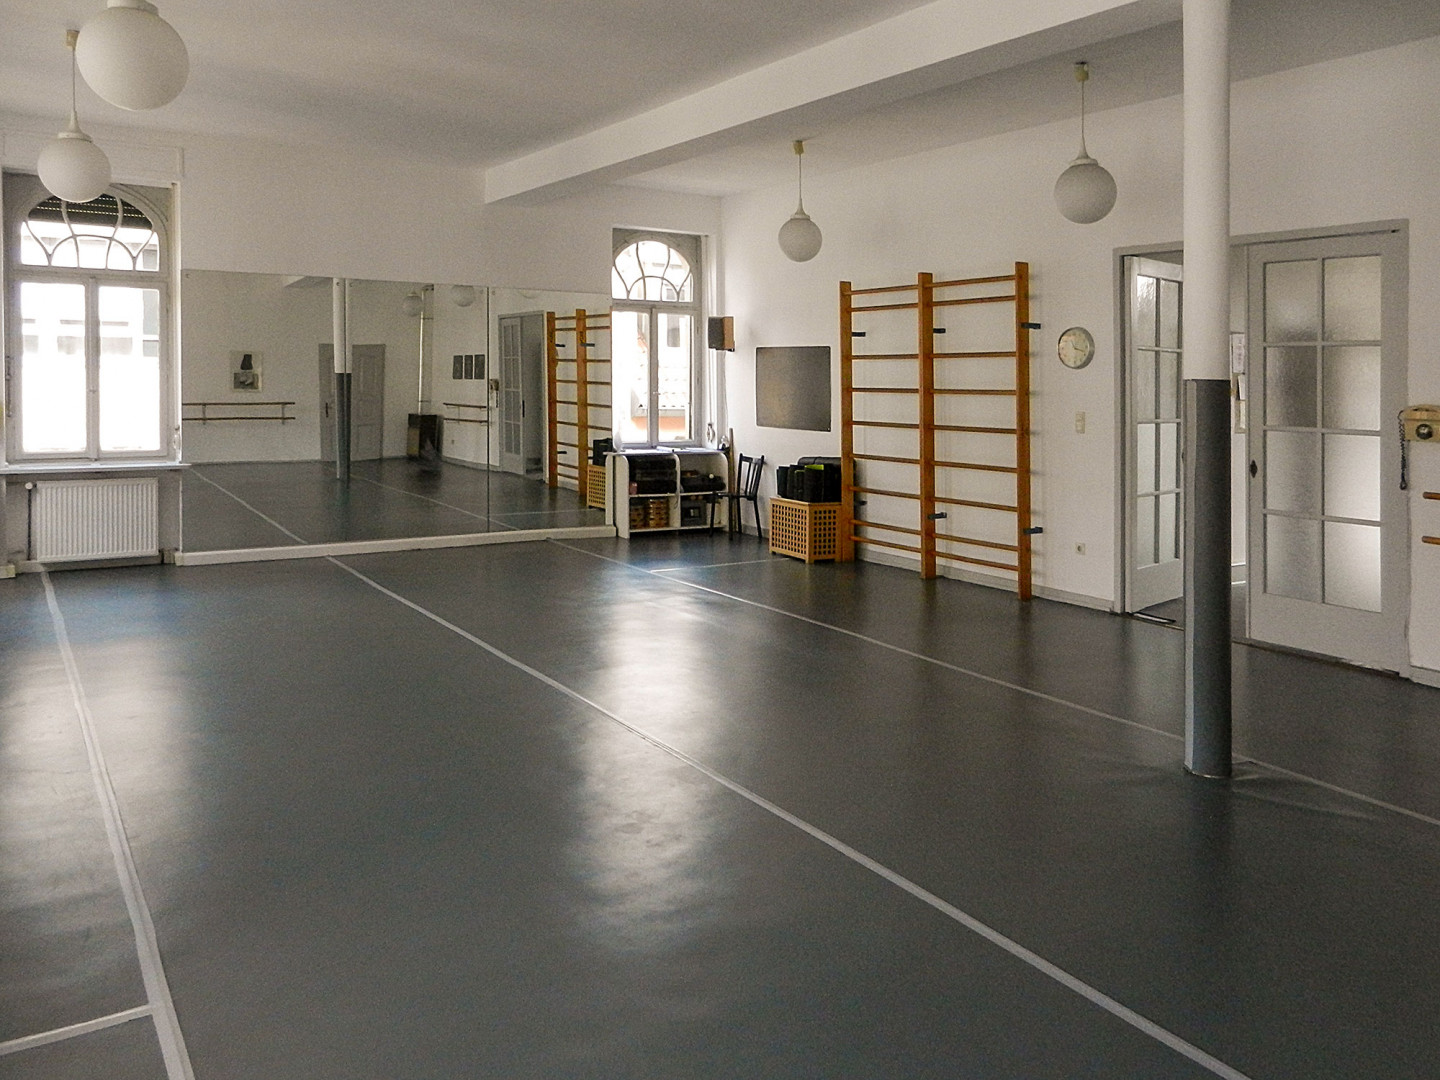 LD_Tanzsaal_02_AS